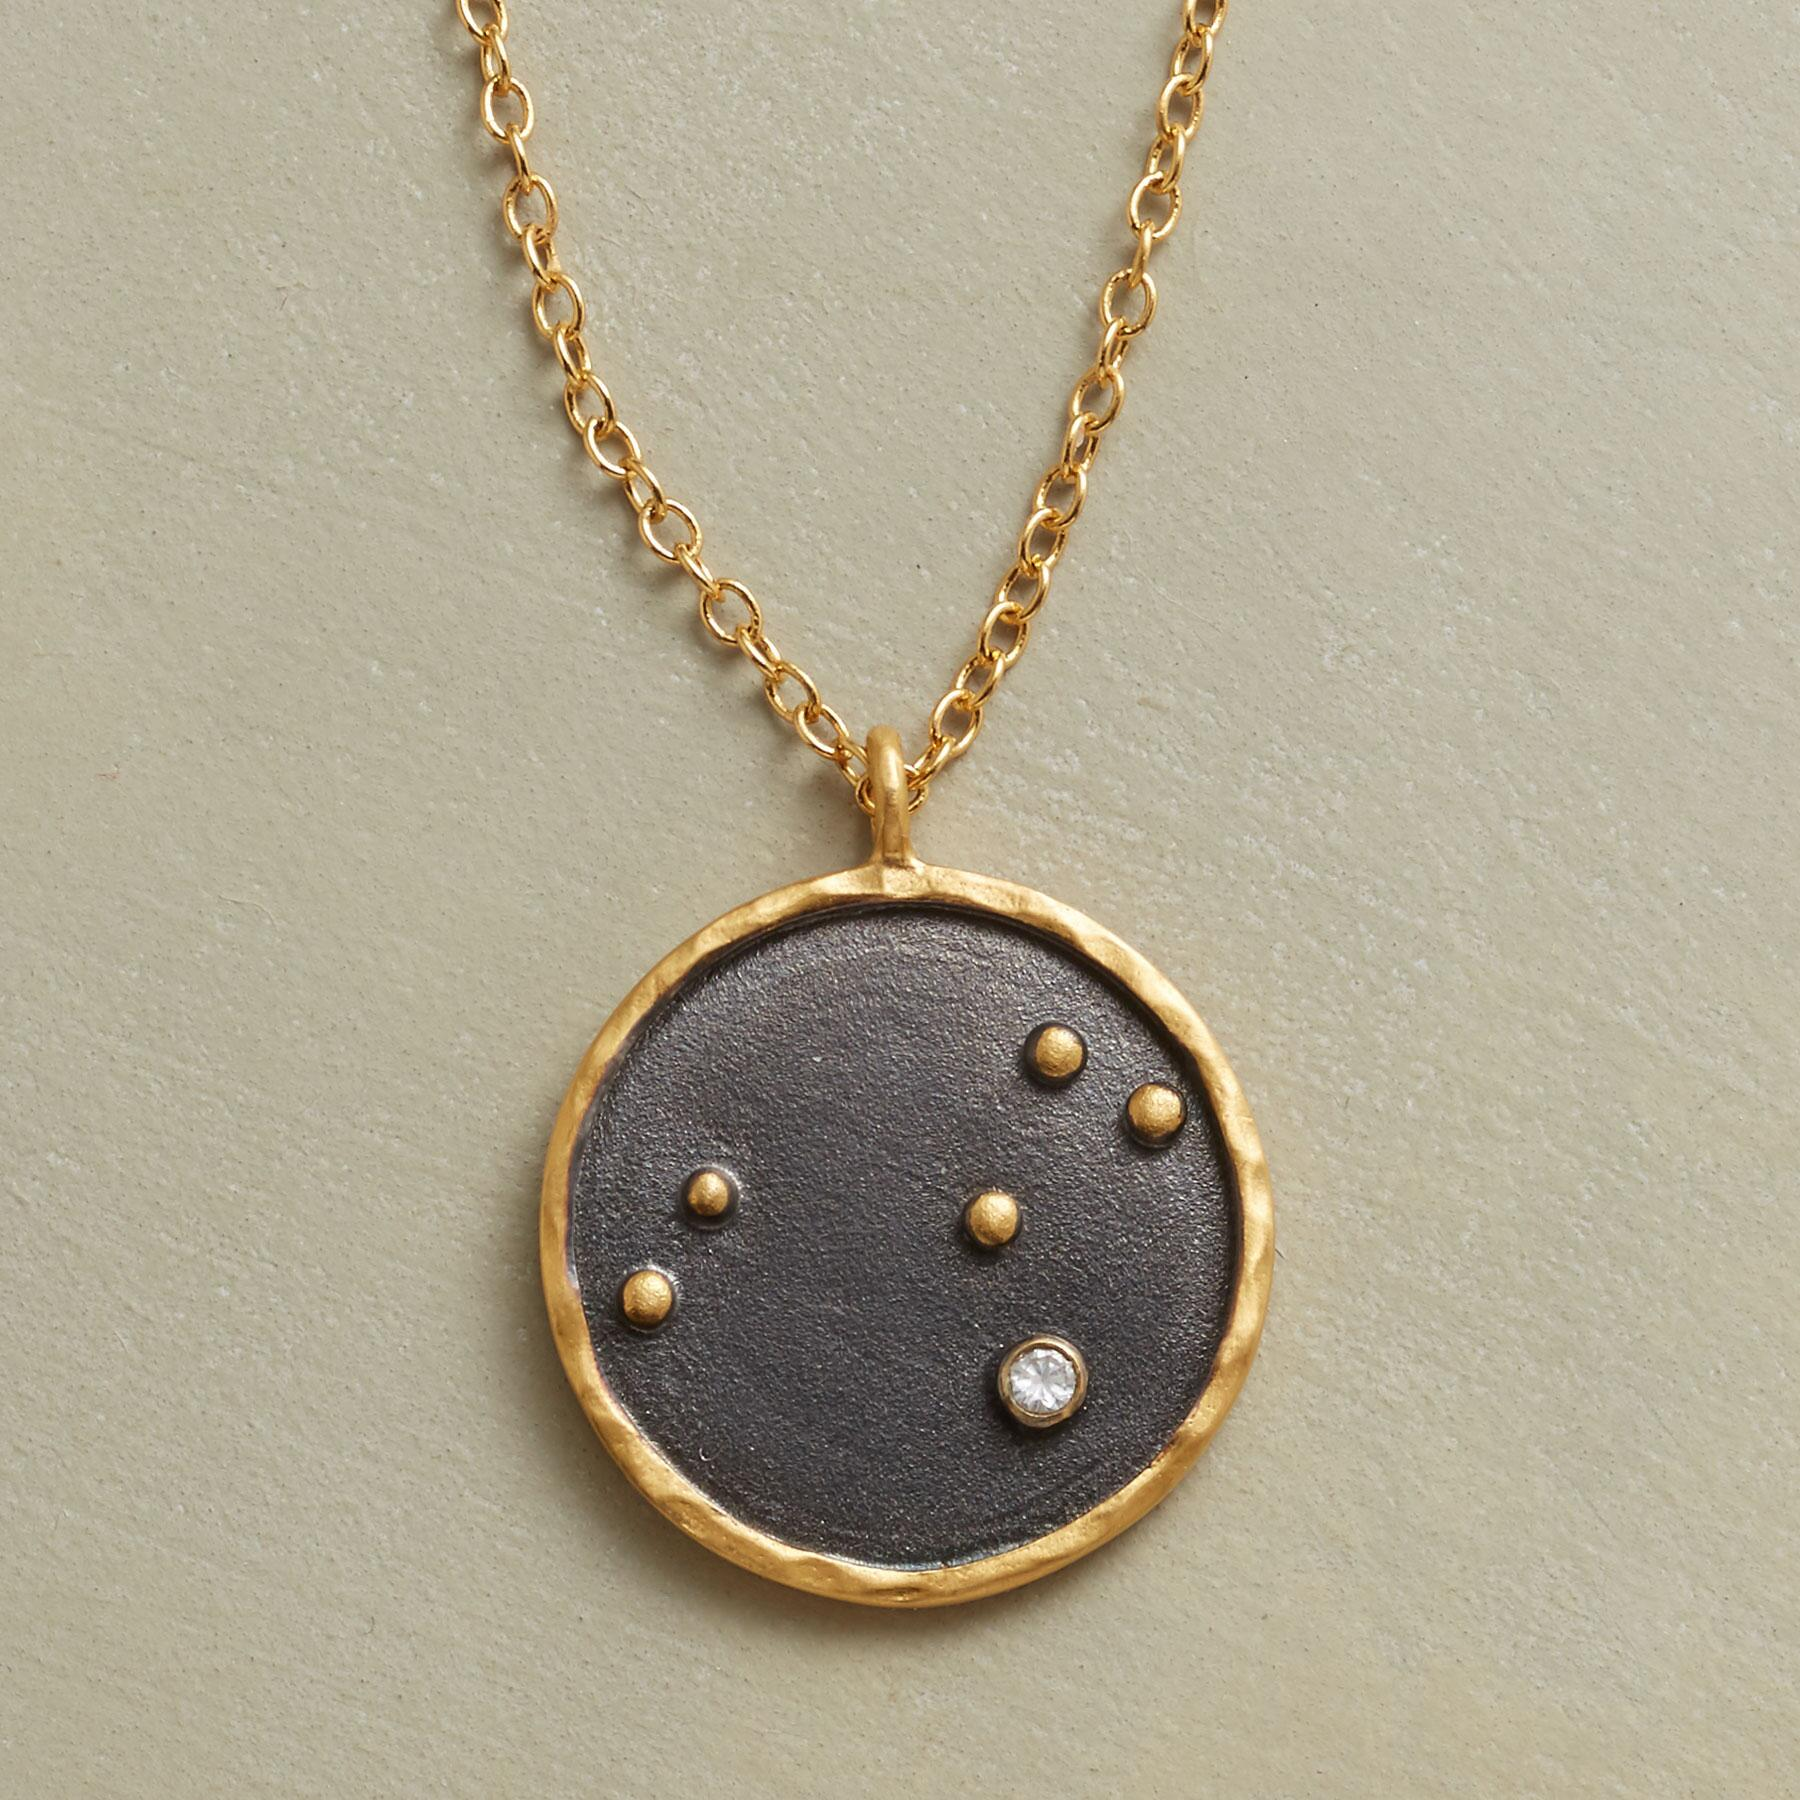 GOLD PLATE ZODIAC CONSTELLATION NECKLACE: View 1